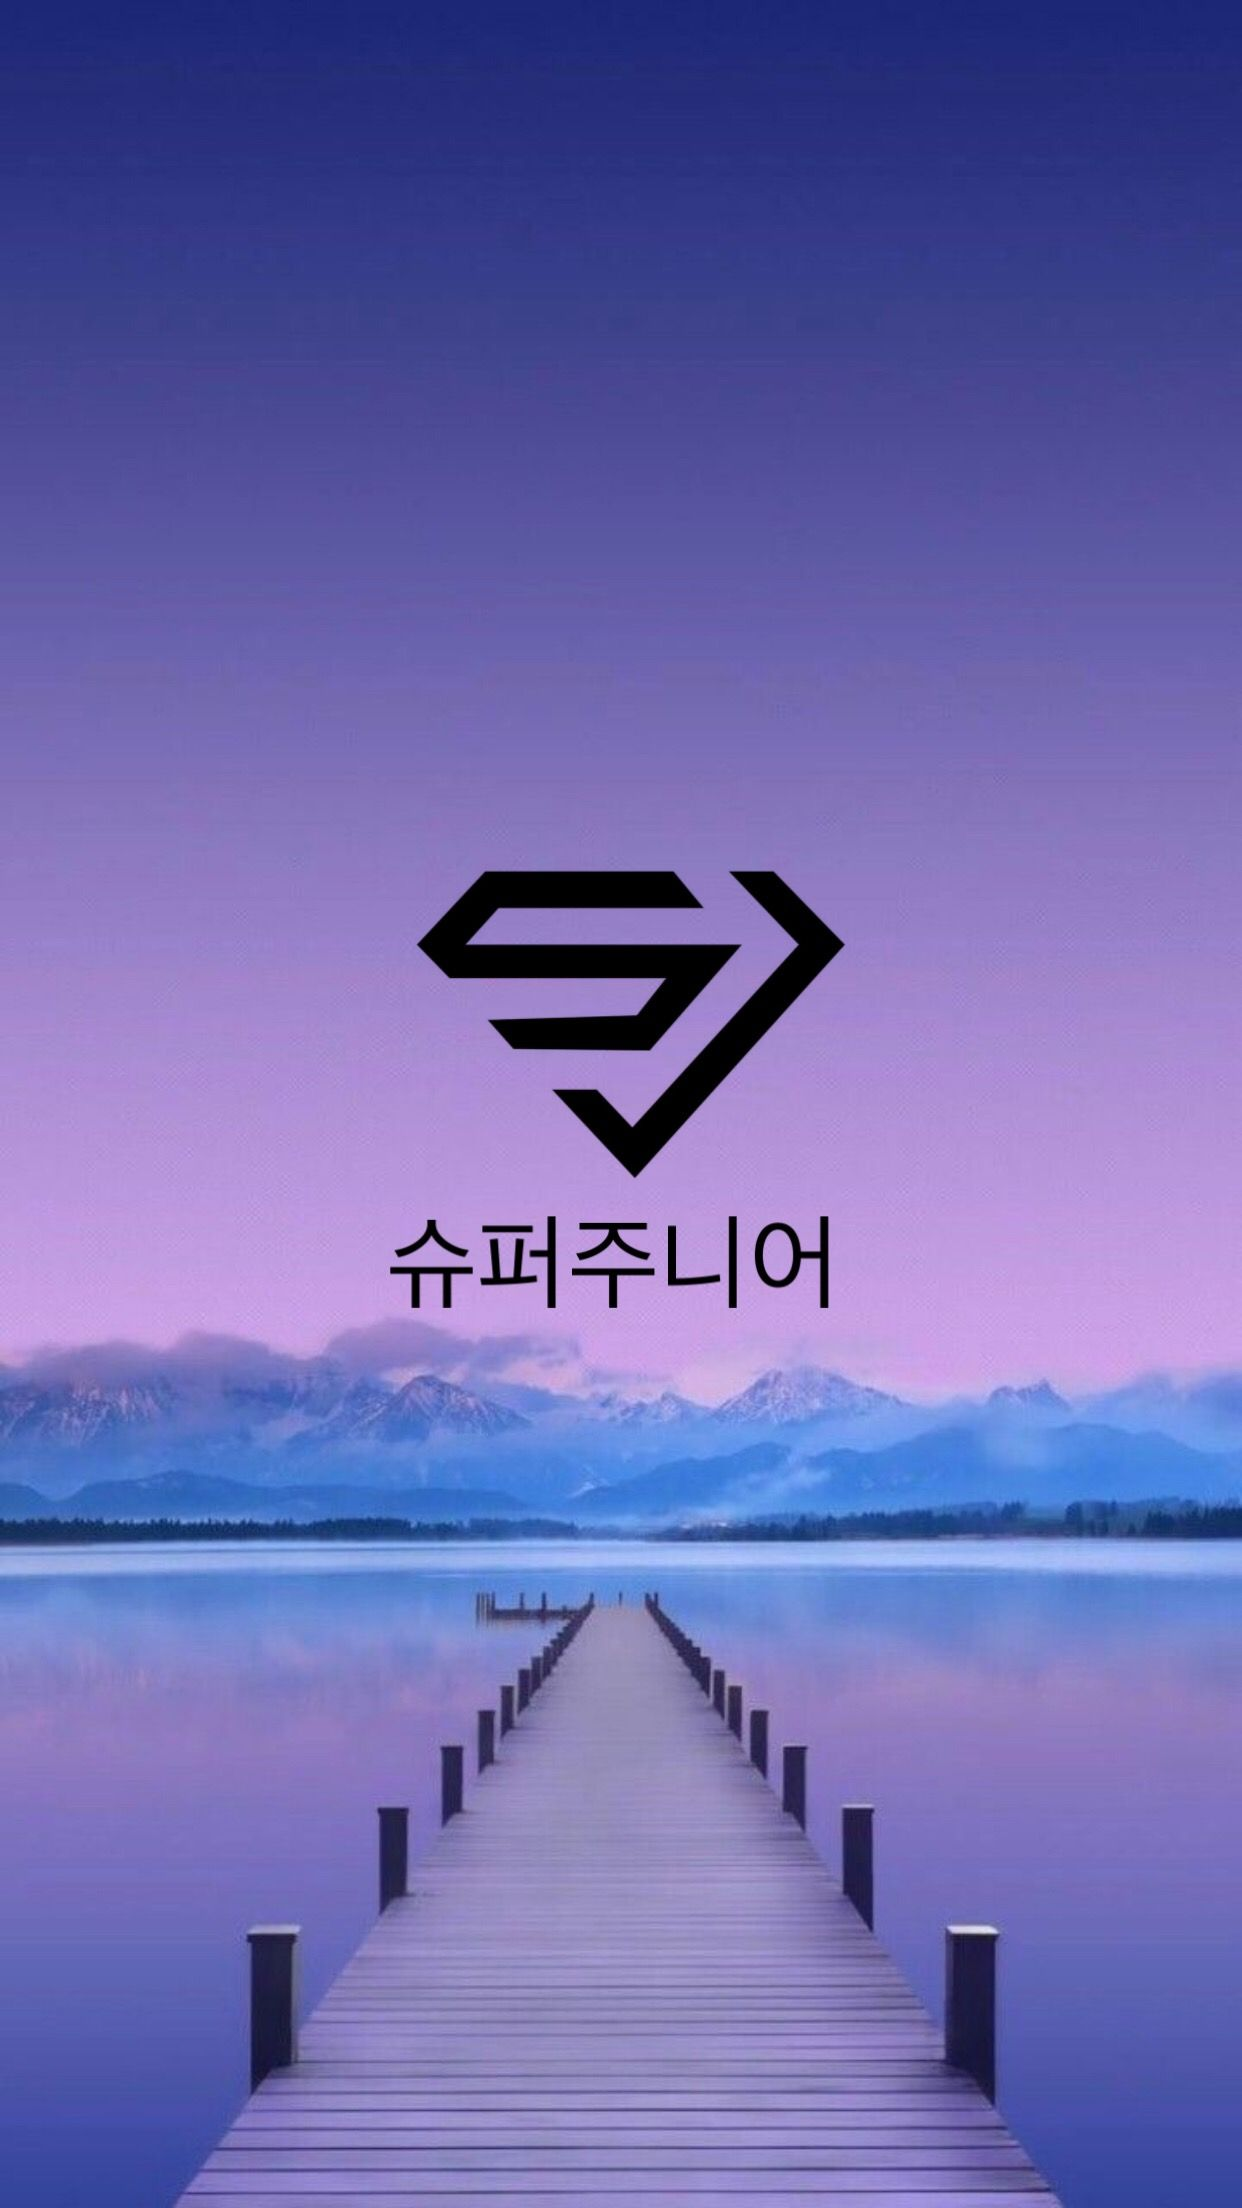 """Our bridge is forever."" SJ logo black ink hangul"